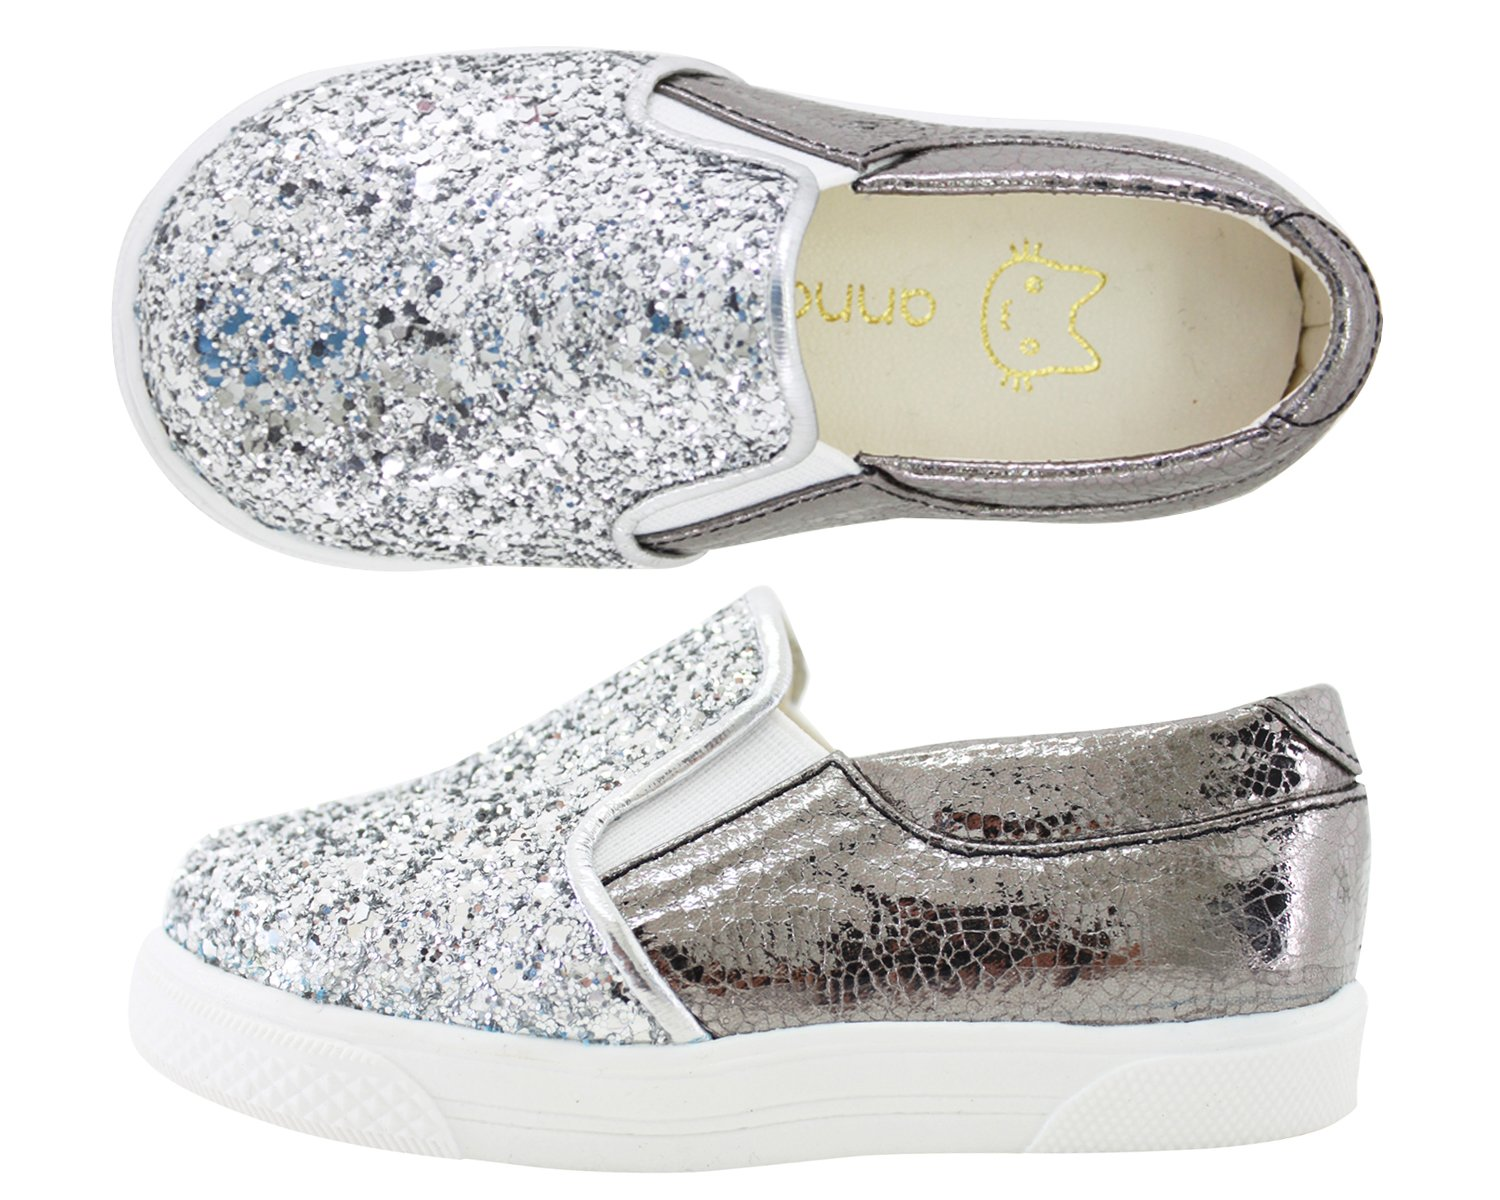 Milky Walk Boys Girls Glitter Slip On Shoes (7 M US Toddler, Silver) by Milky Walk (Image #1)